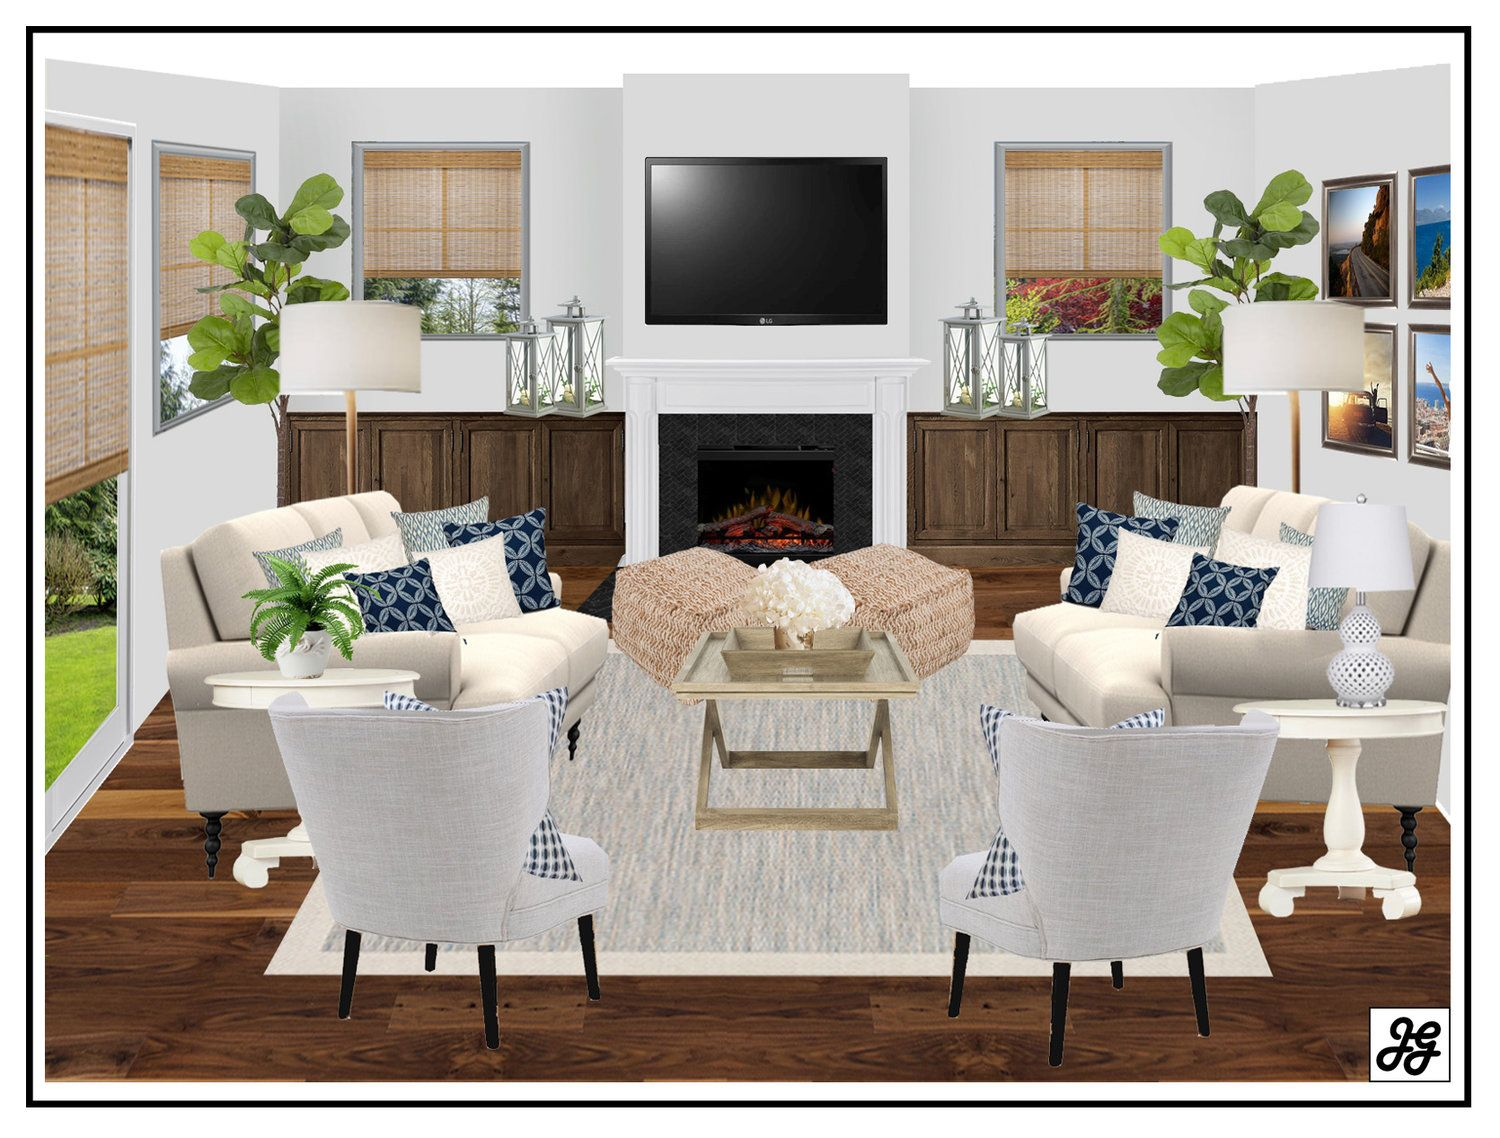 Living Room Design Concepts Endearing Coastal Living Room Design Concept Modern Farmhouse Living Room Review